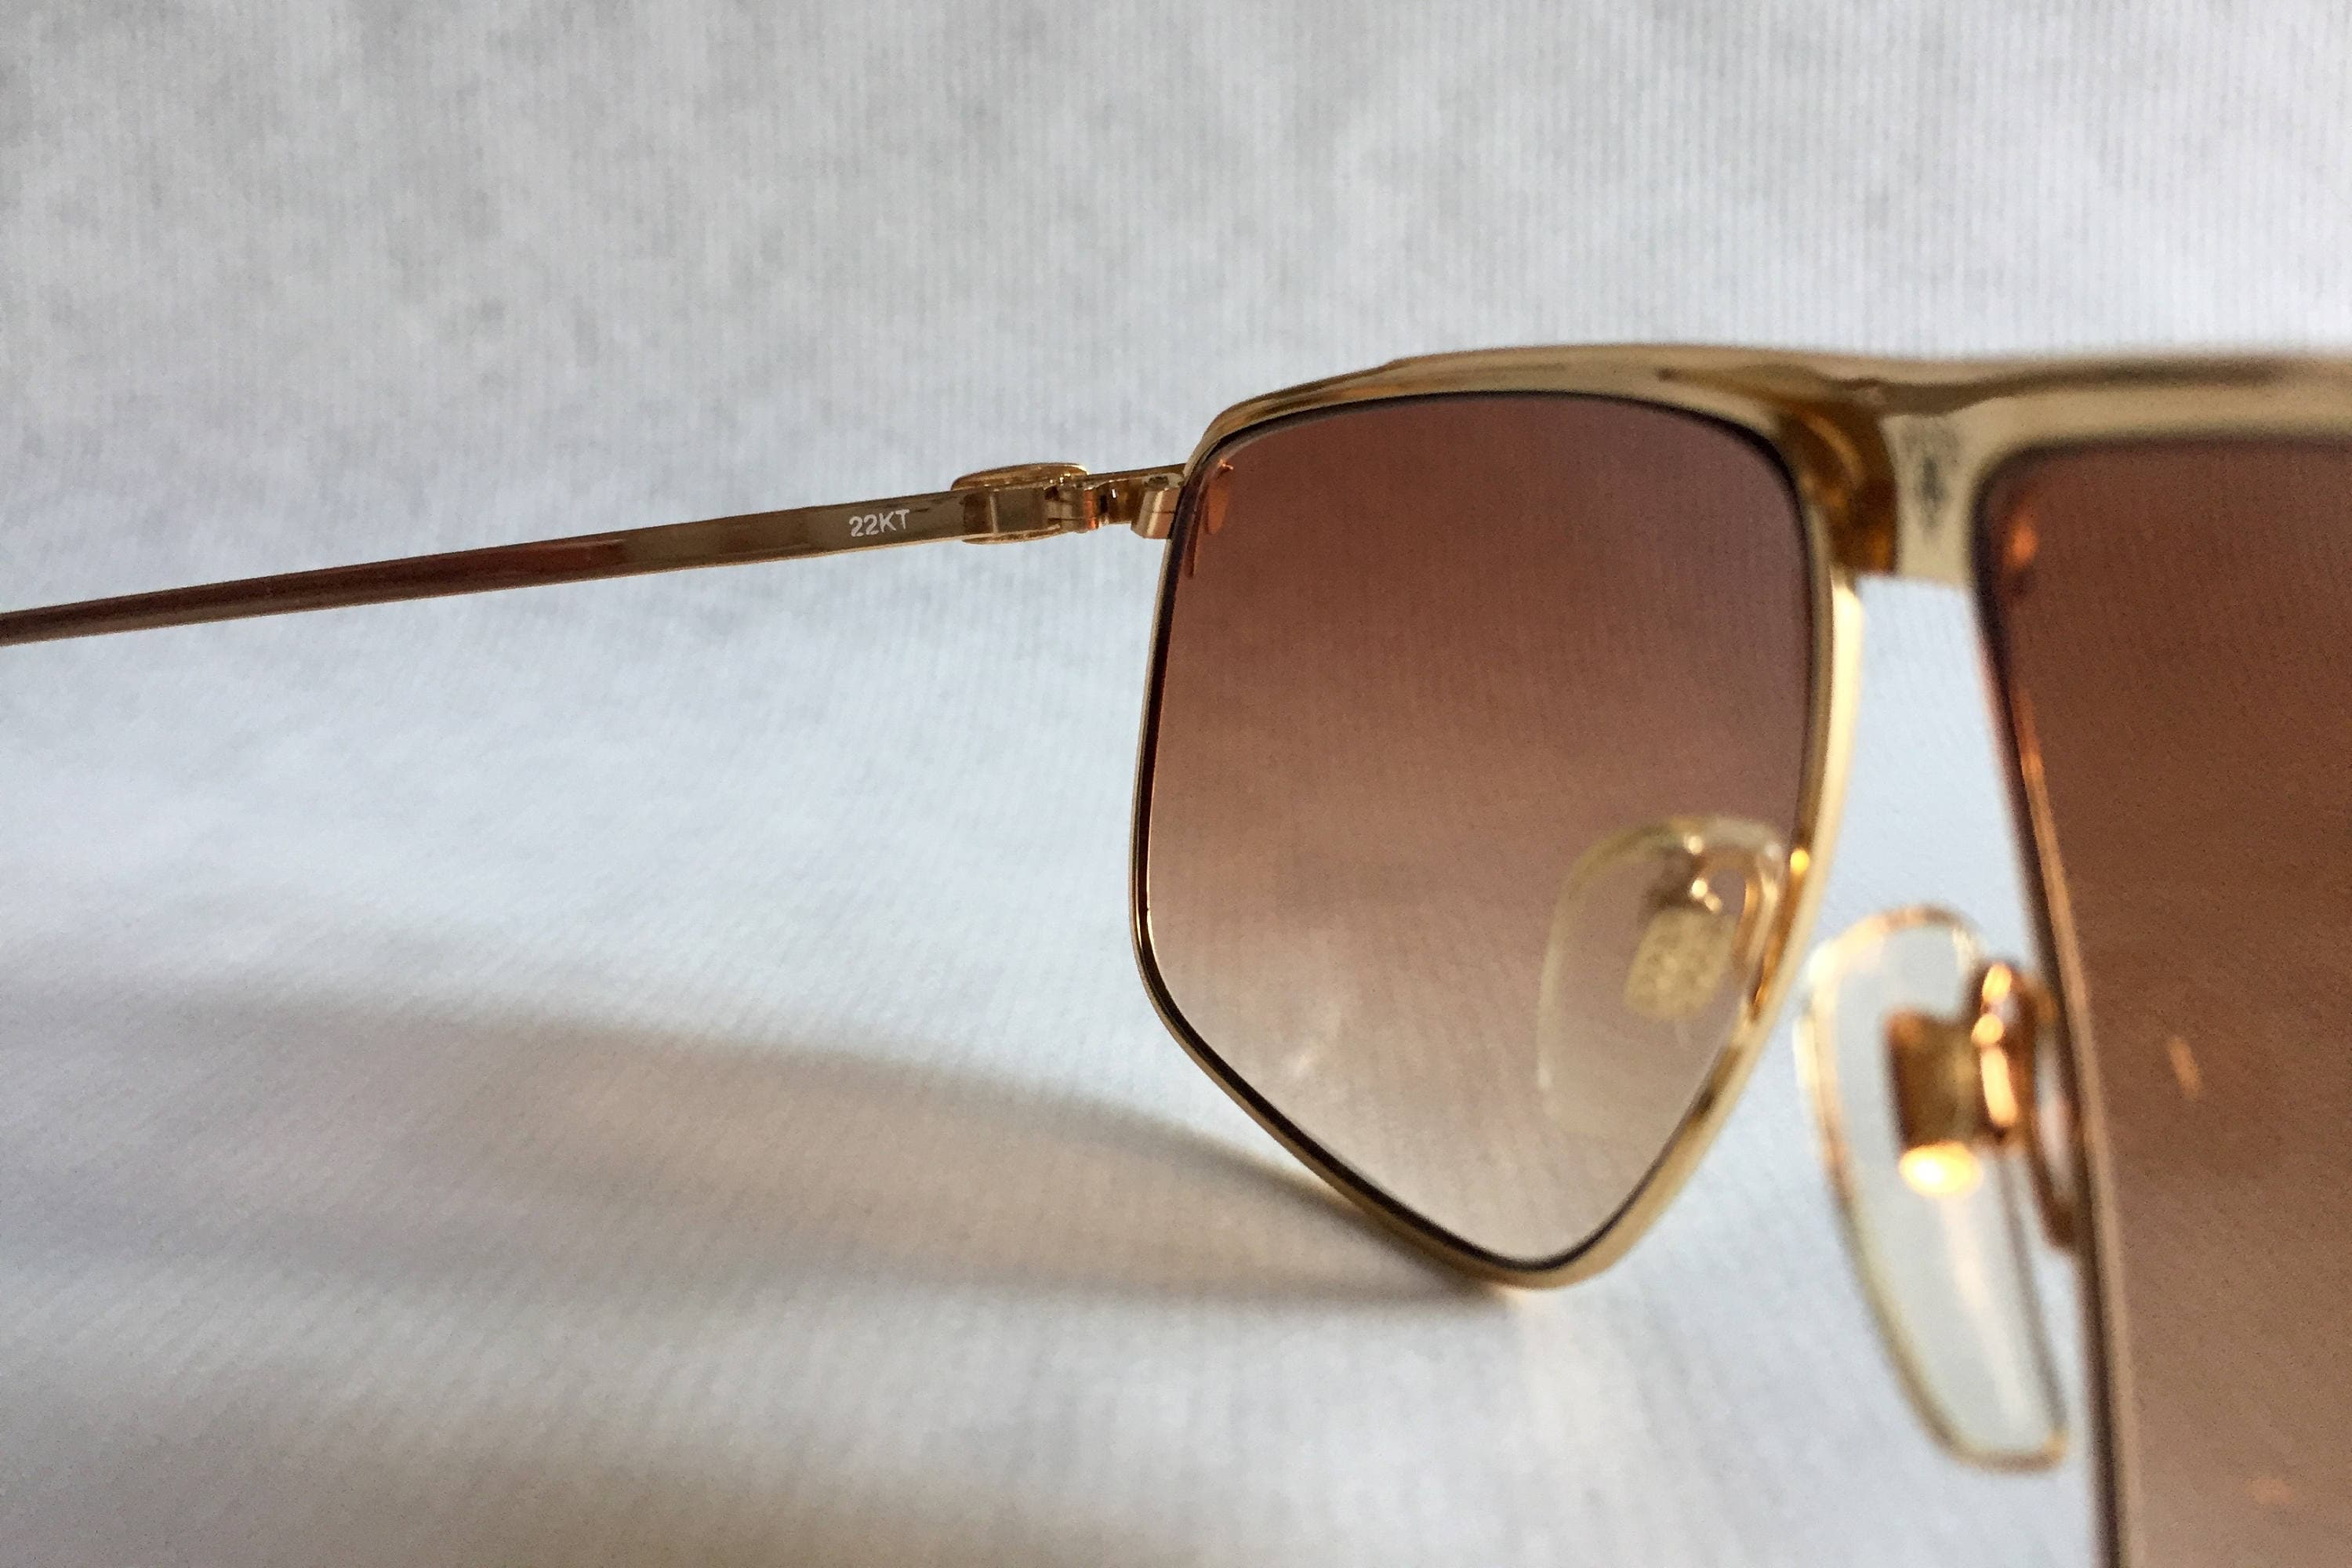 3d23b1501ac GUCCI GG40 22kt Gold Vintage Sunglasses New Old Stock including ...